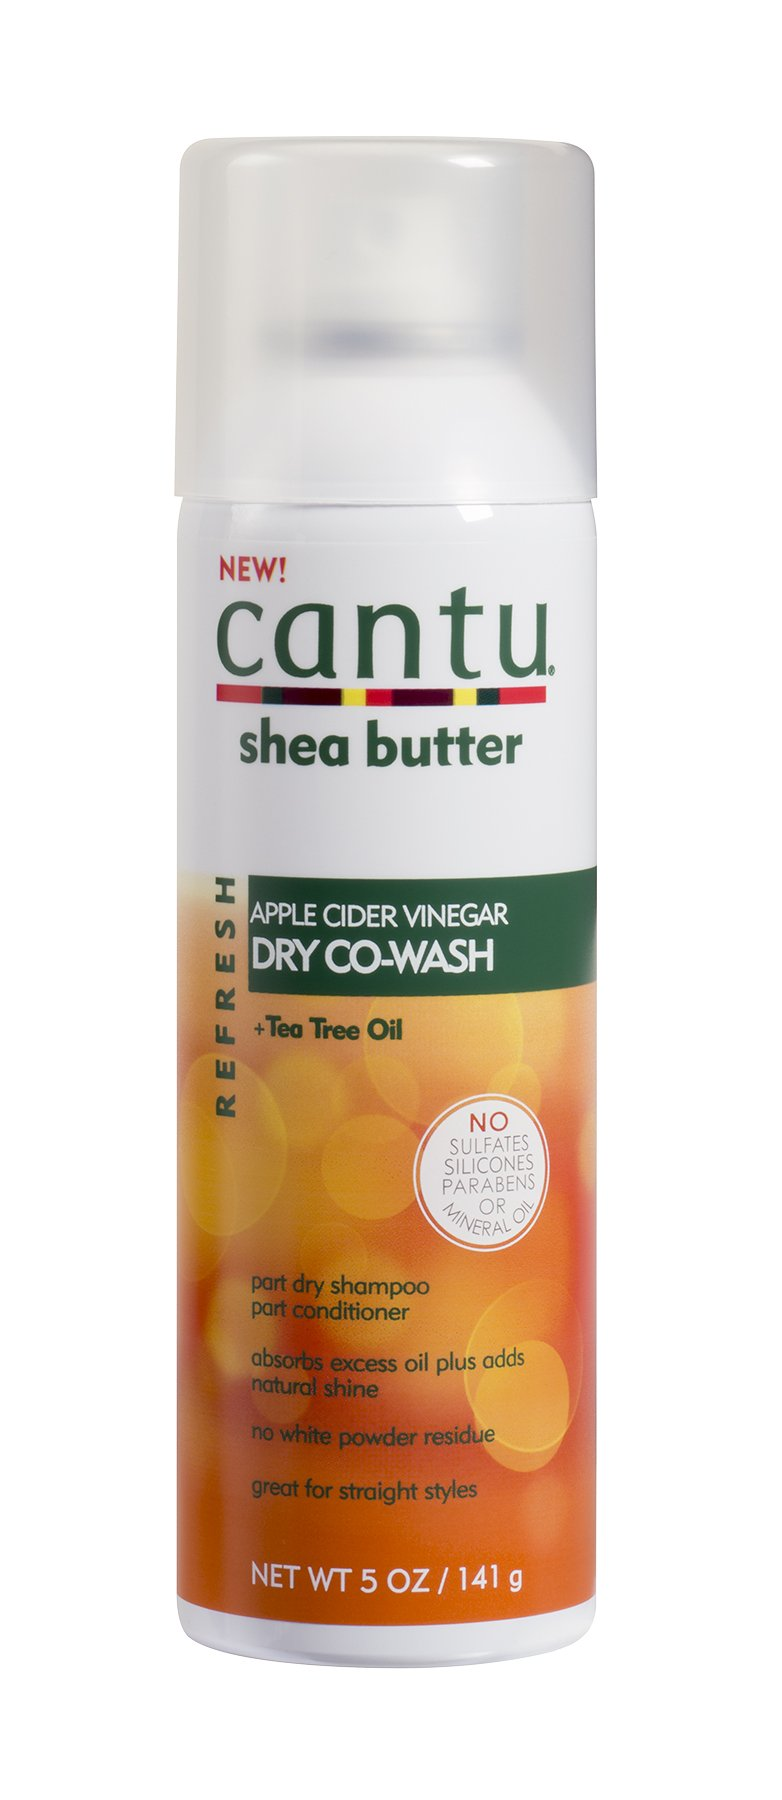 Cantu Refresh Dry Co-wash with Apple Cider Vinegar and Tea Tree Oil, 5 Ounce (Pack of 3) by Cantu